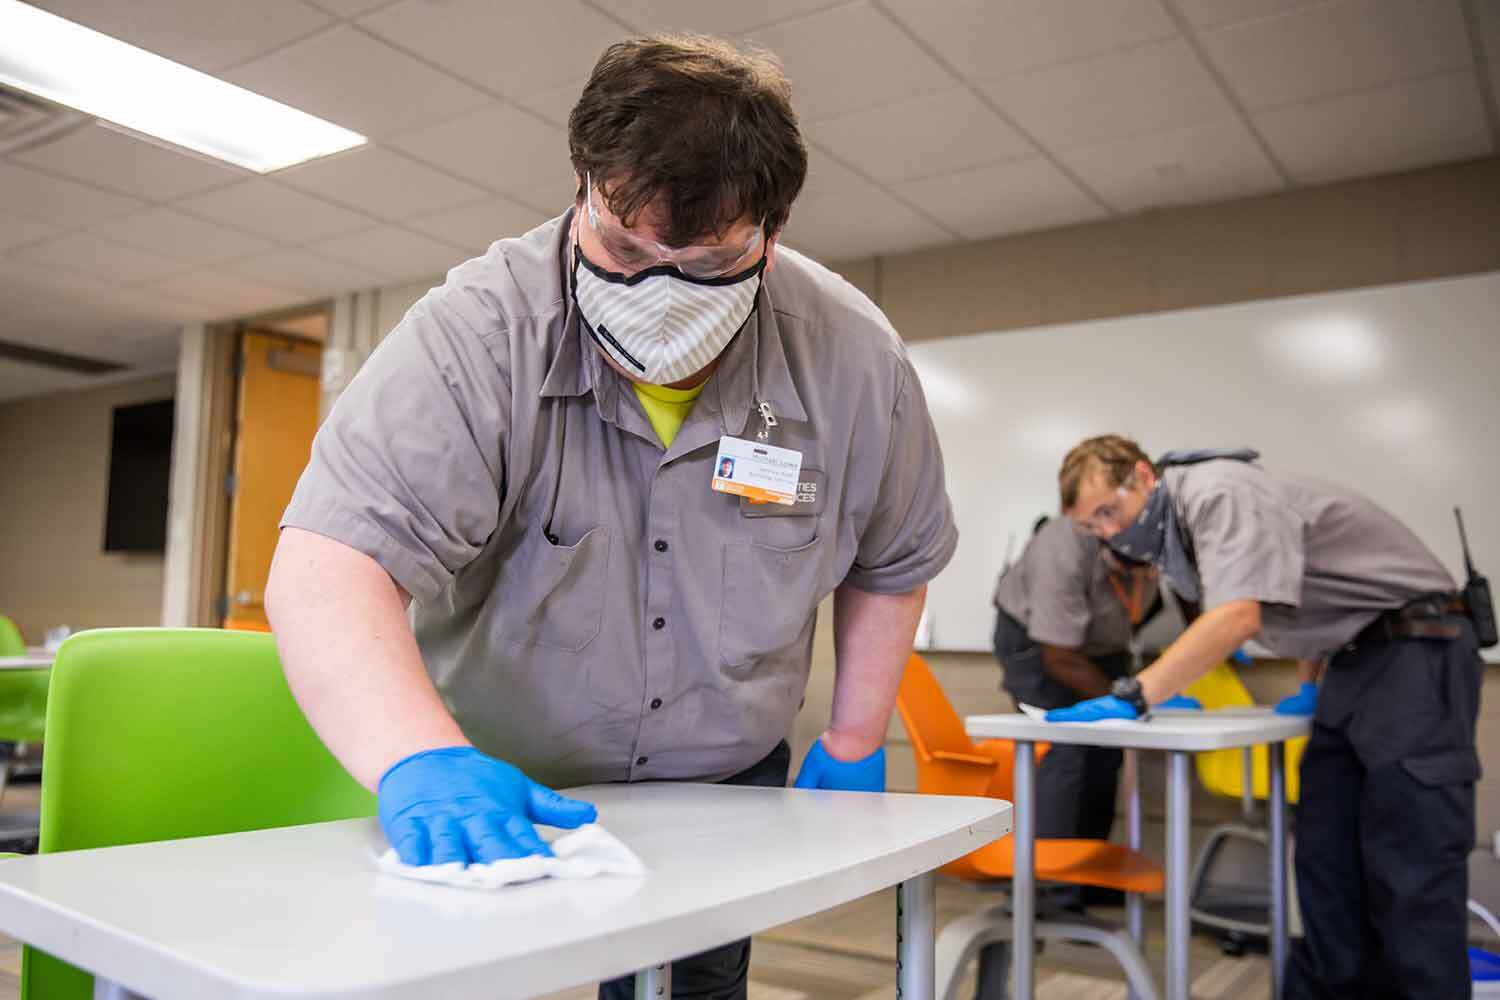 Safety in classrooms and instructional labs